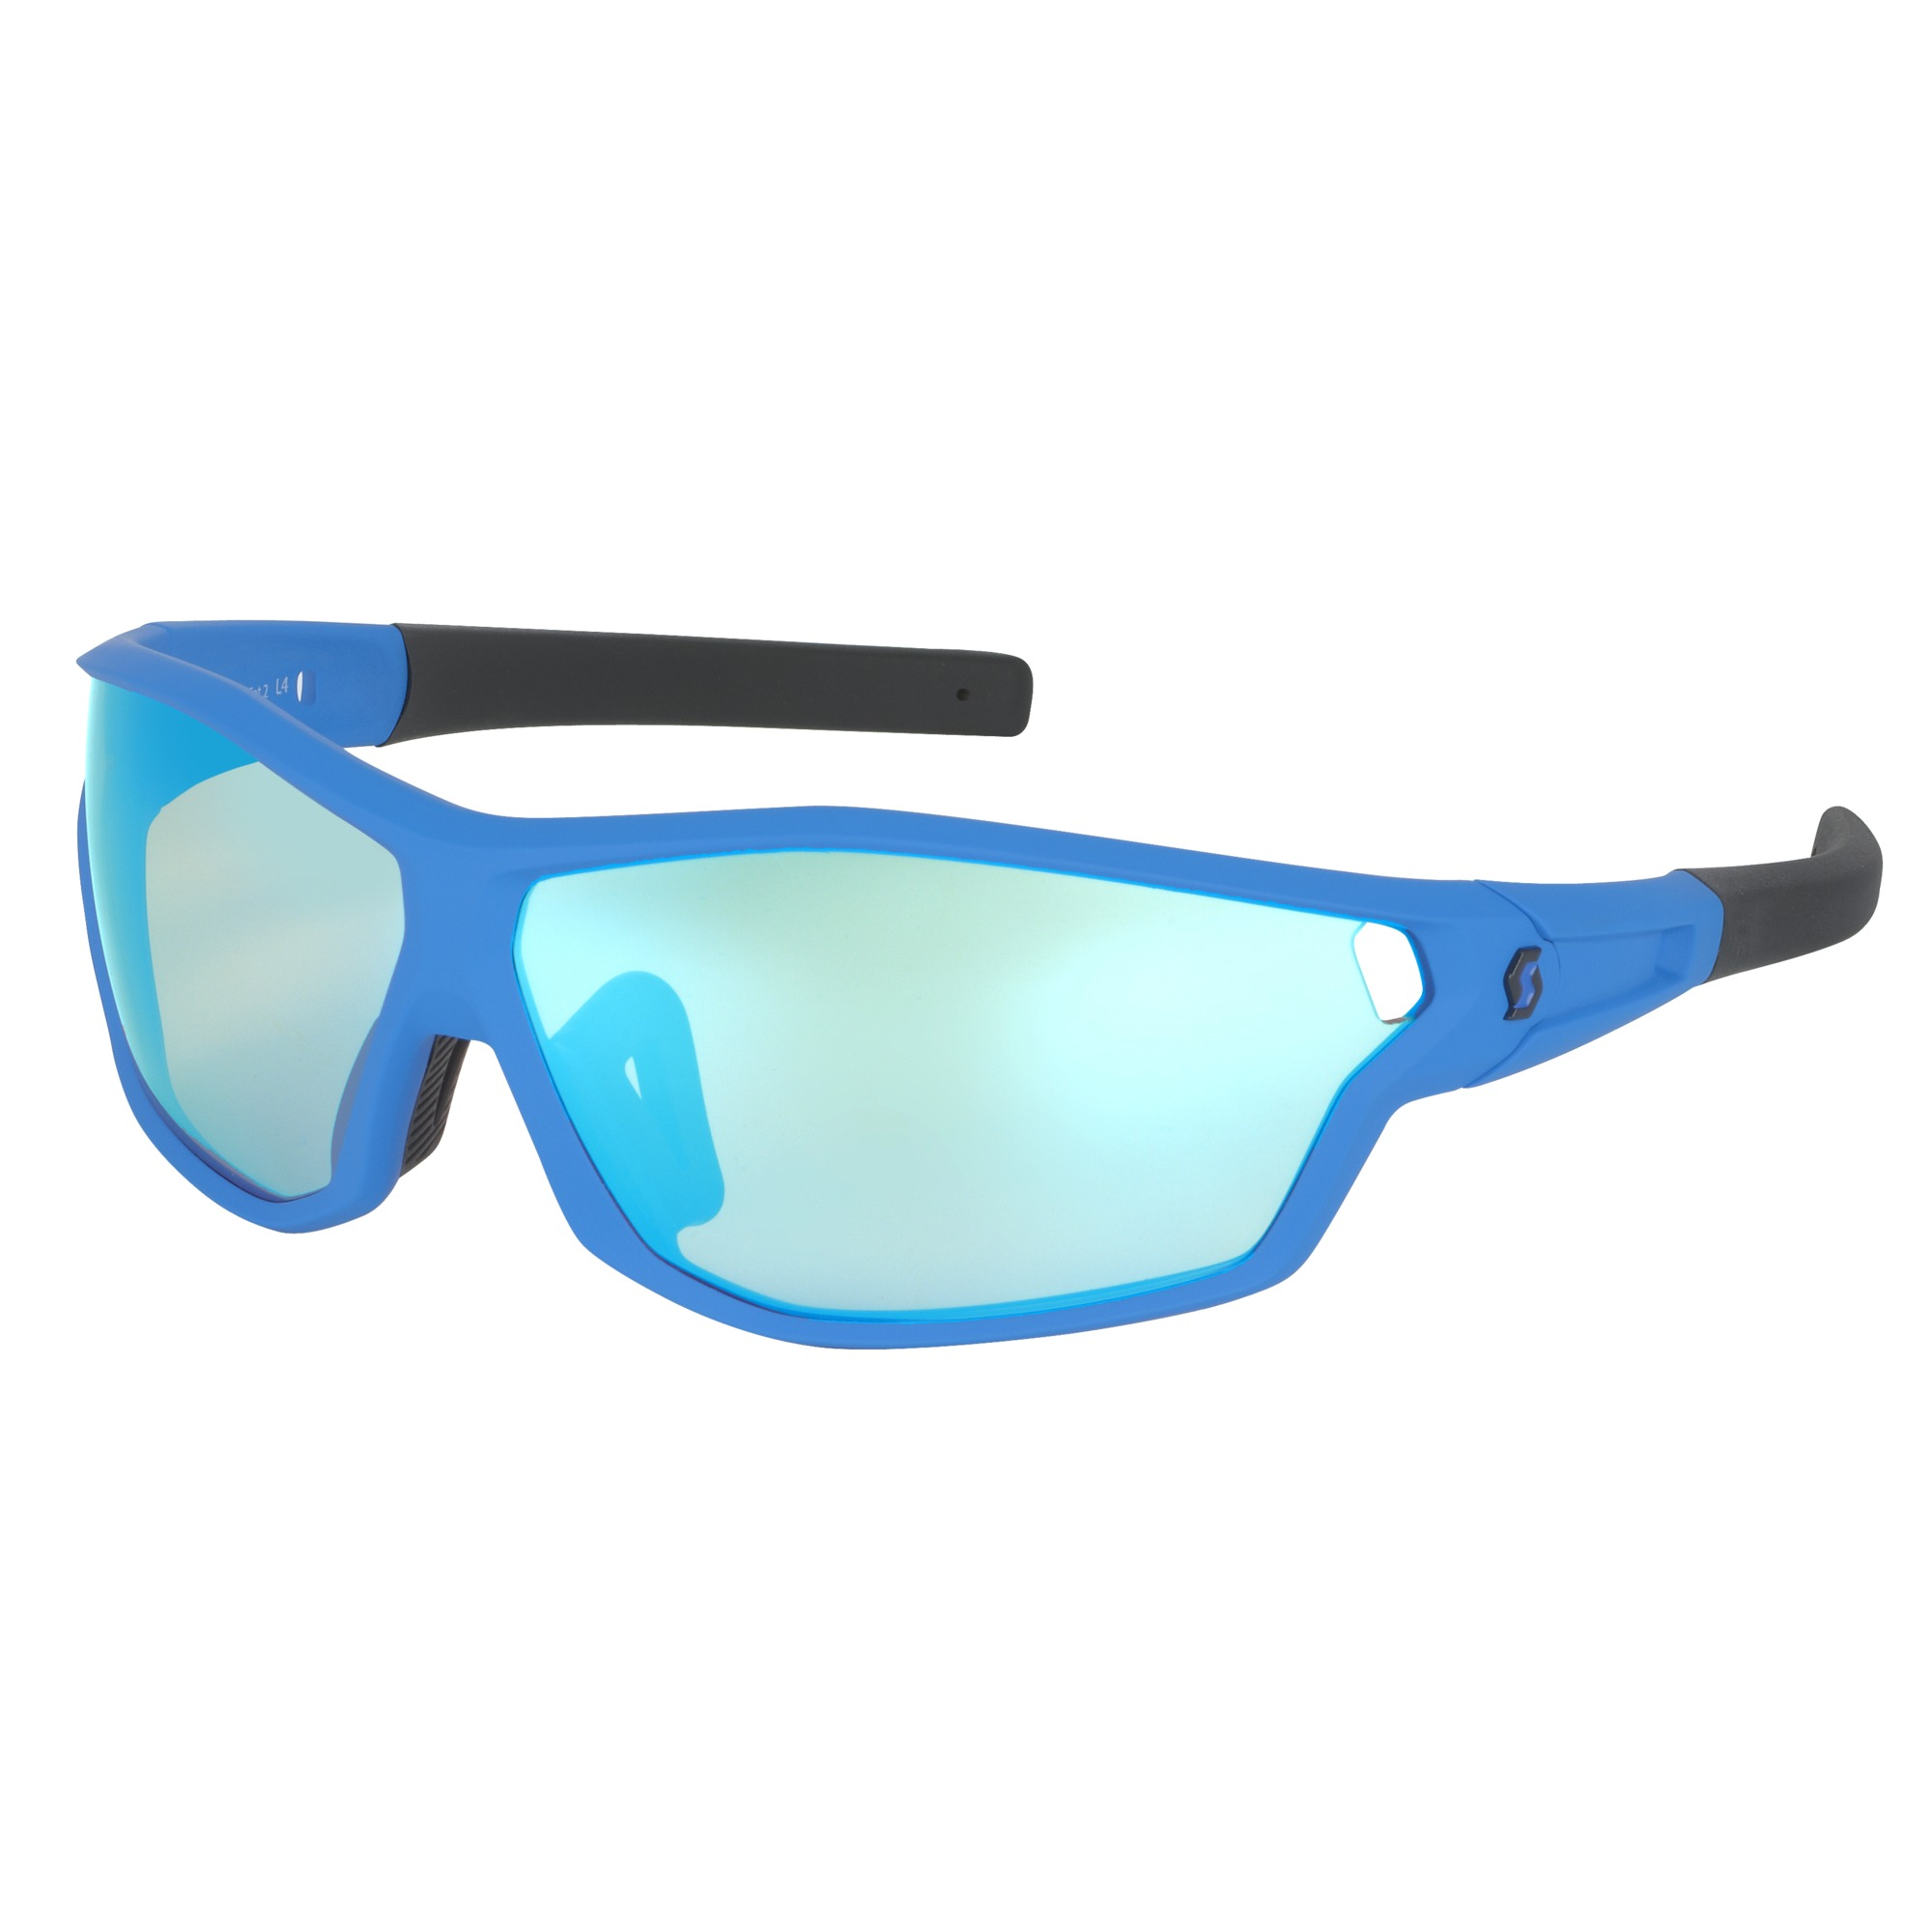 OCCHIALE SPORTIVO SCOTT LEAP FULL FRAME SUNGLASSES 241968 BLUE MATT BLACK.jpg